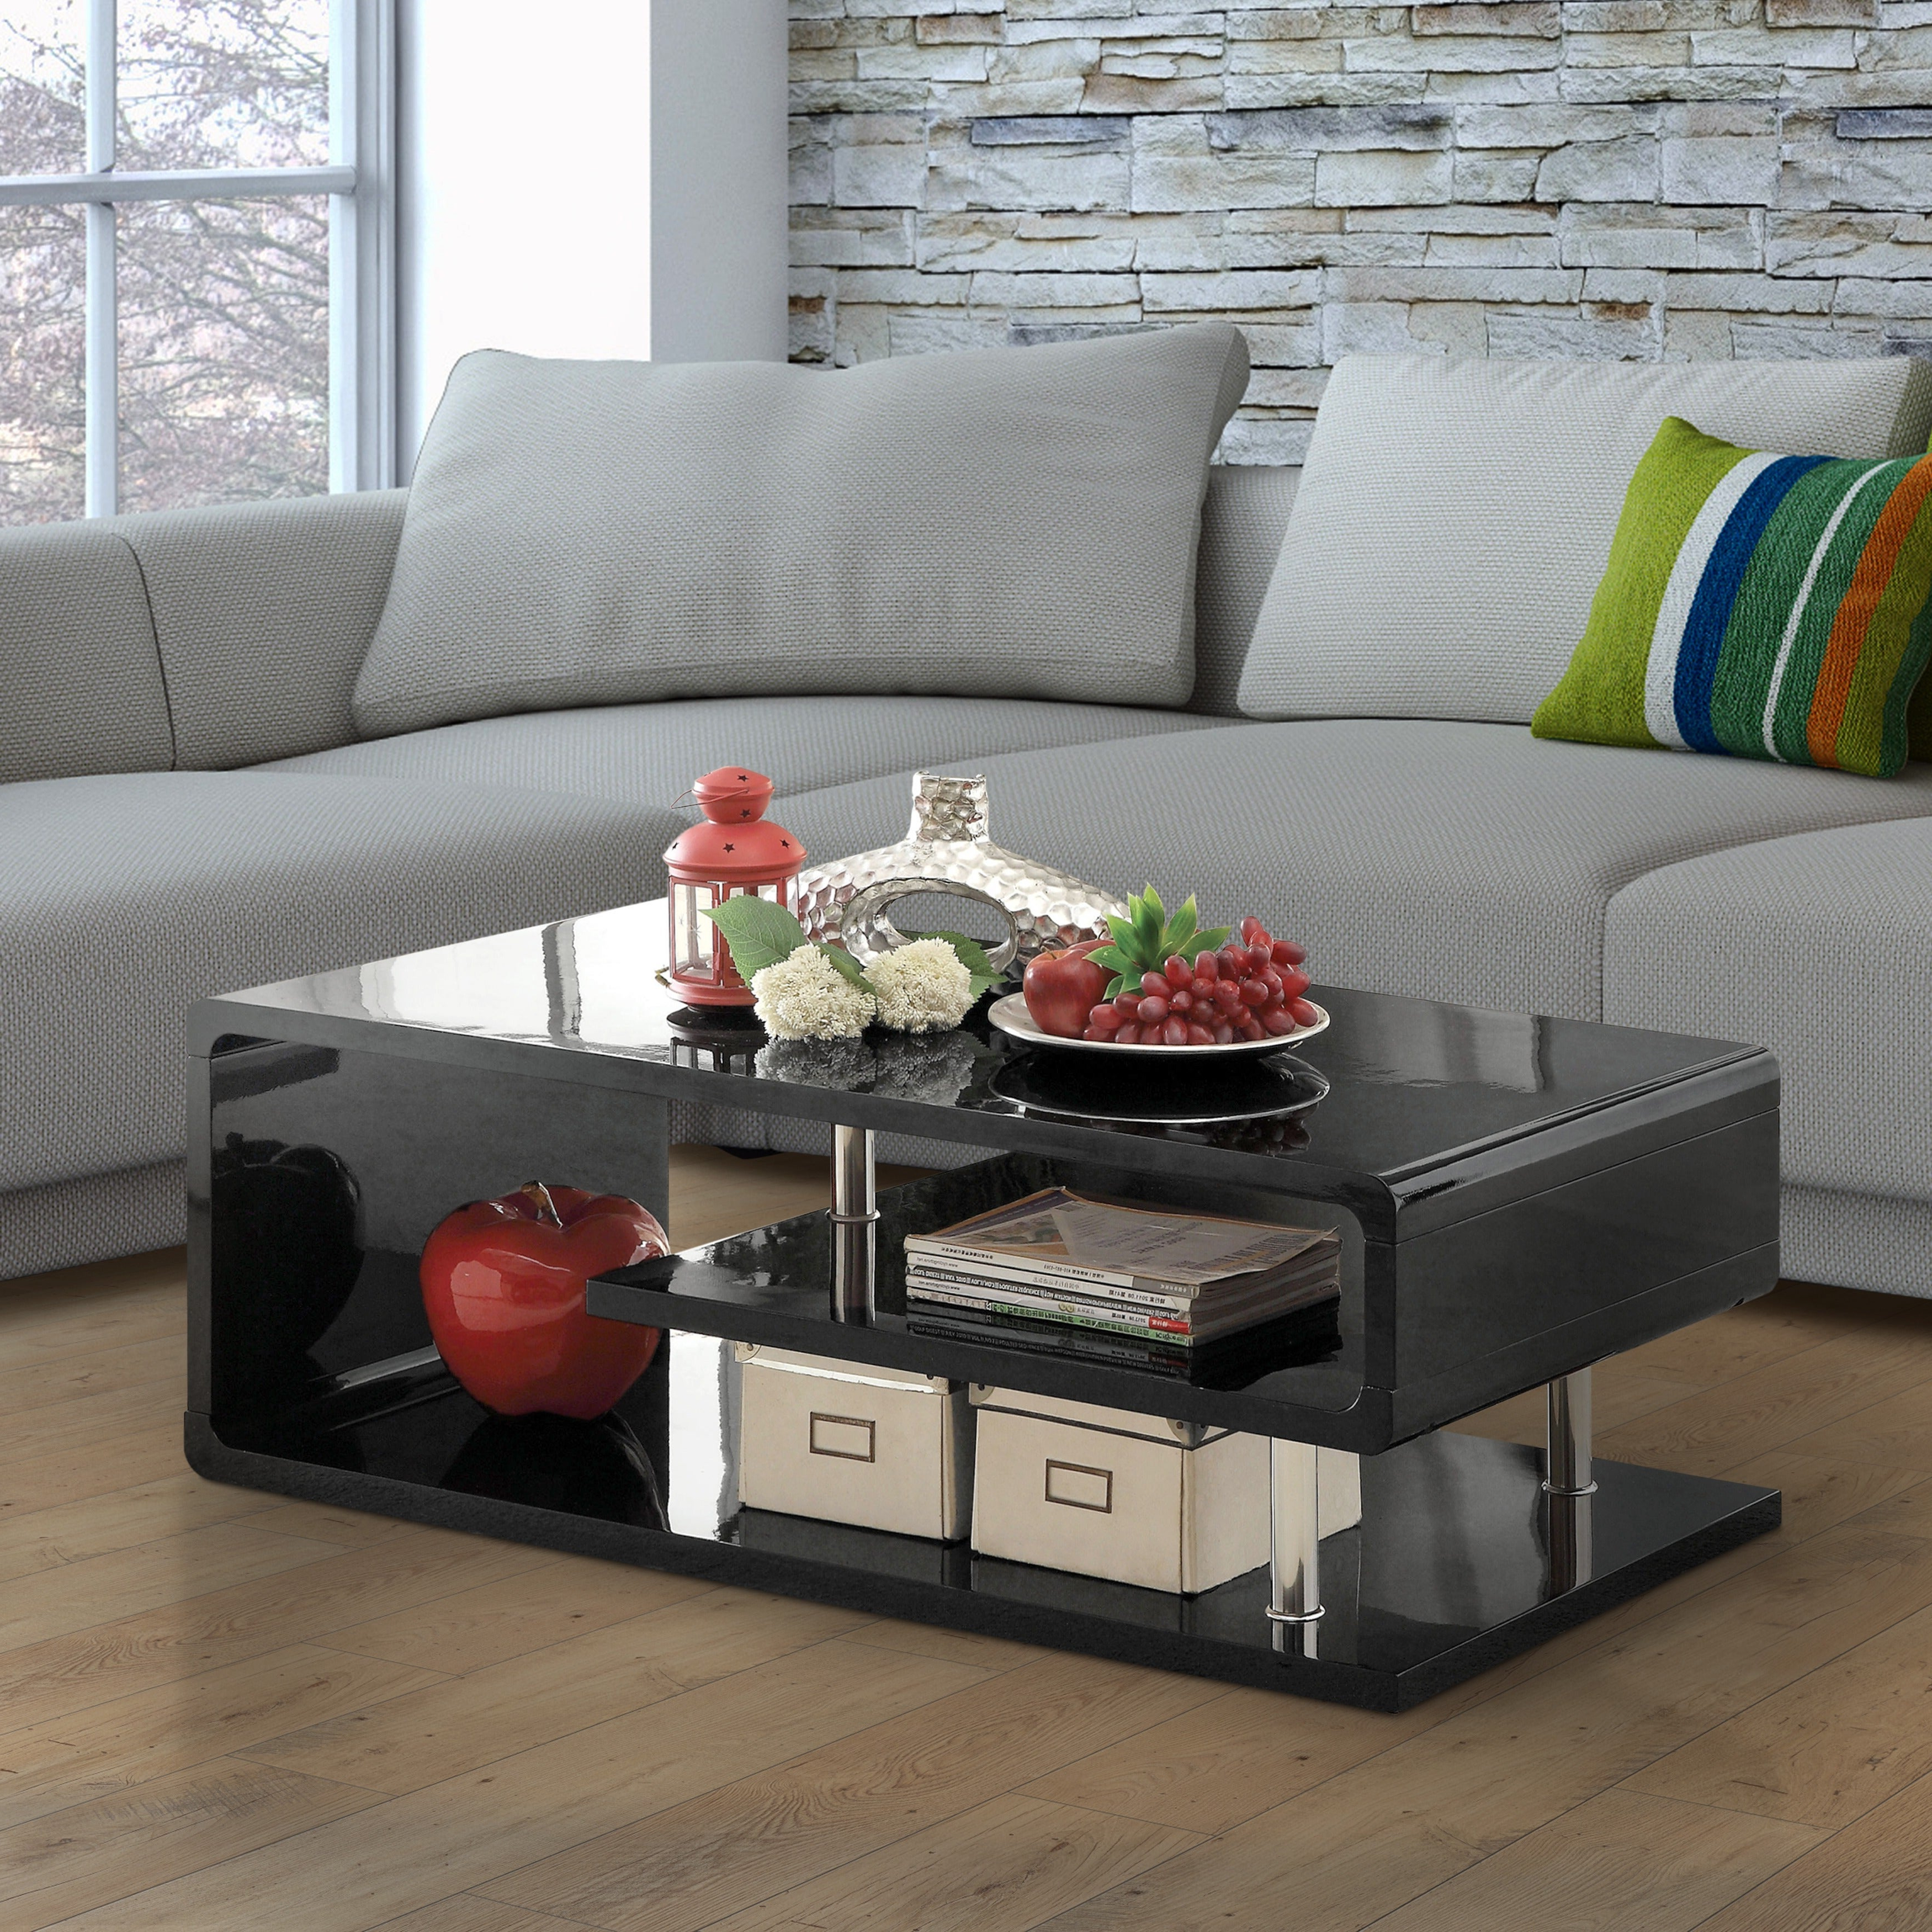 Strick & Bolton Sylvia Geometric High Gloss Coffee Table Regarding Best And Newest Strick & Bolton Sylvia Geometric High Gloss Coffee Tables (View 2 of 20)